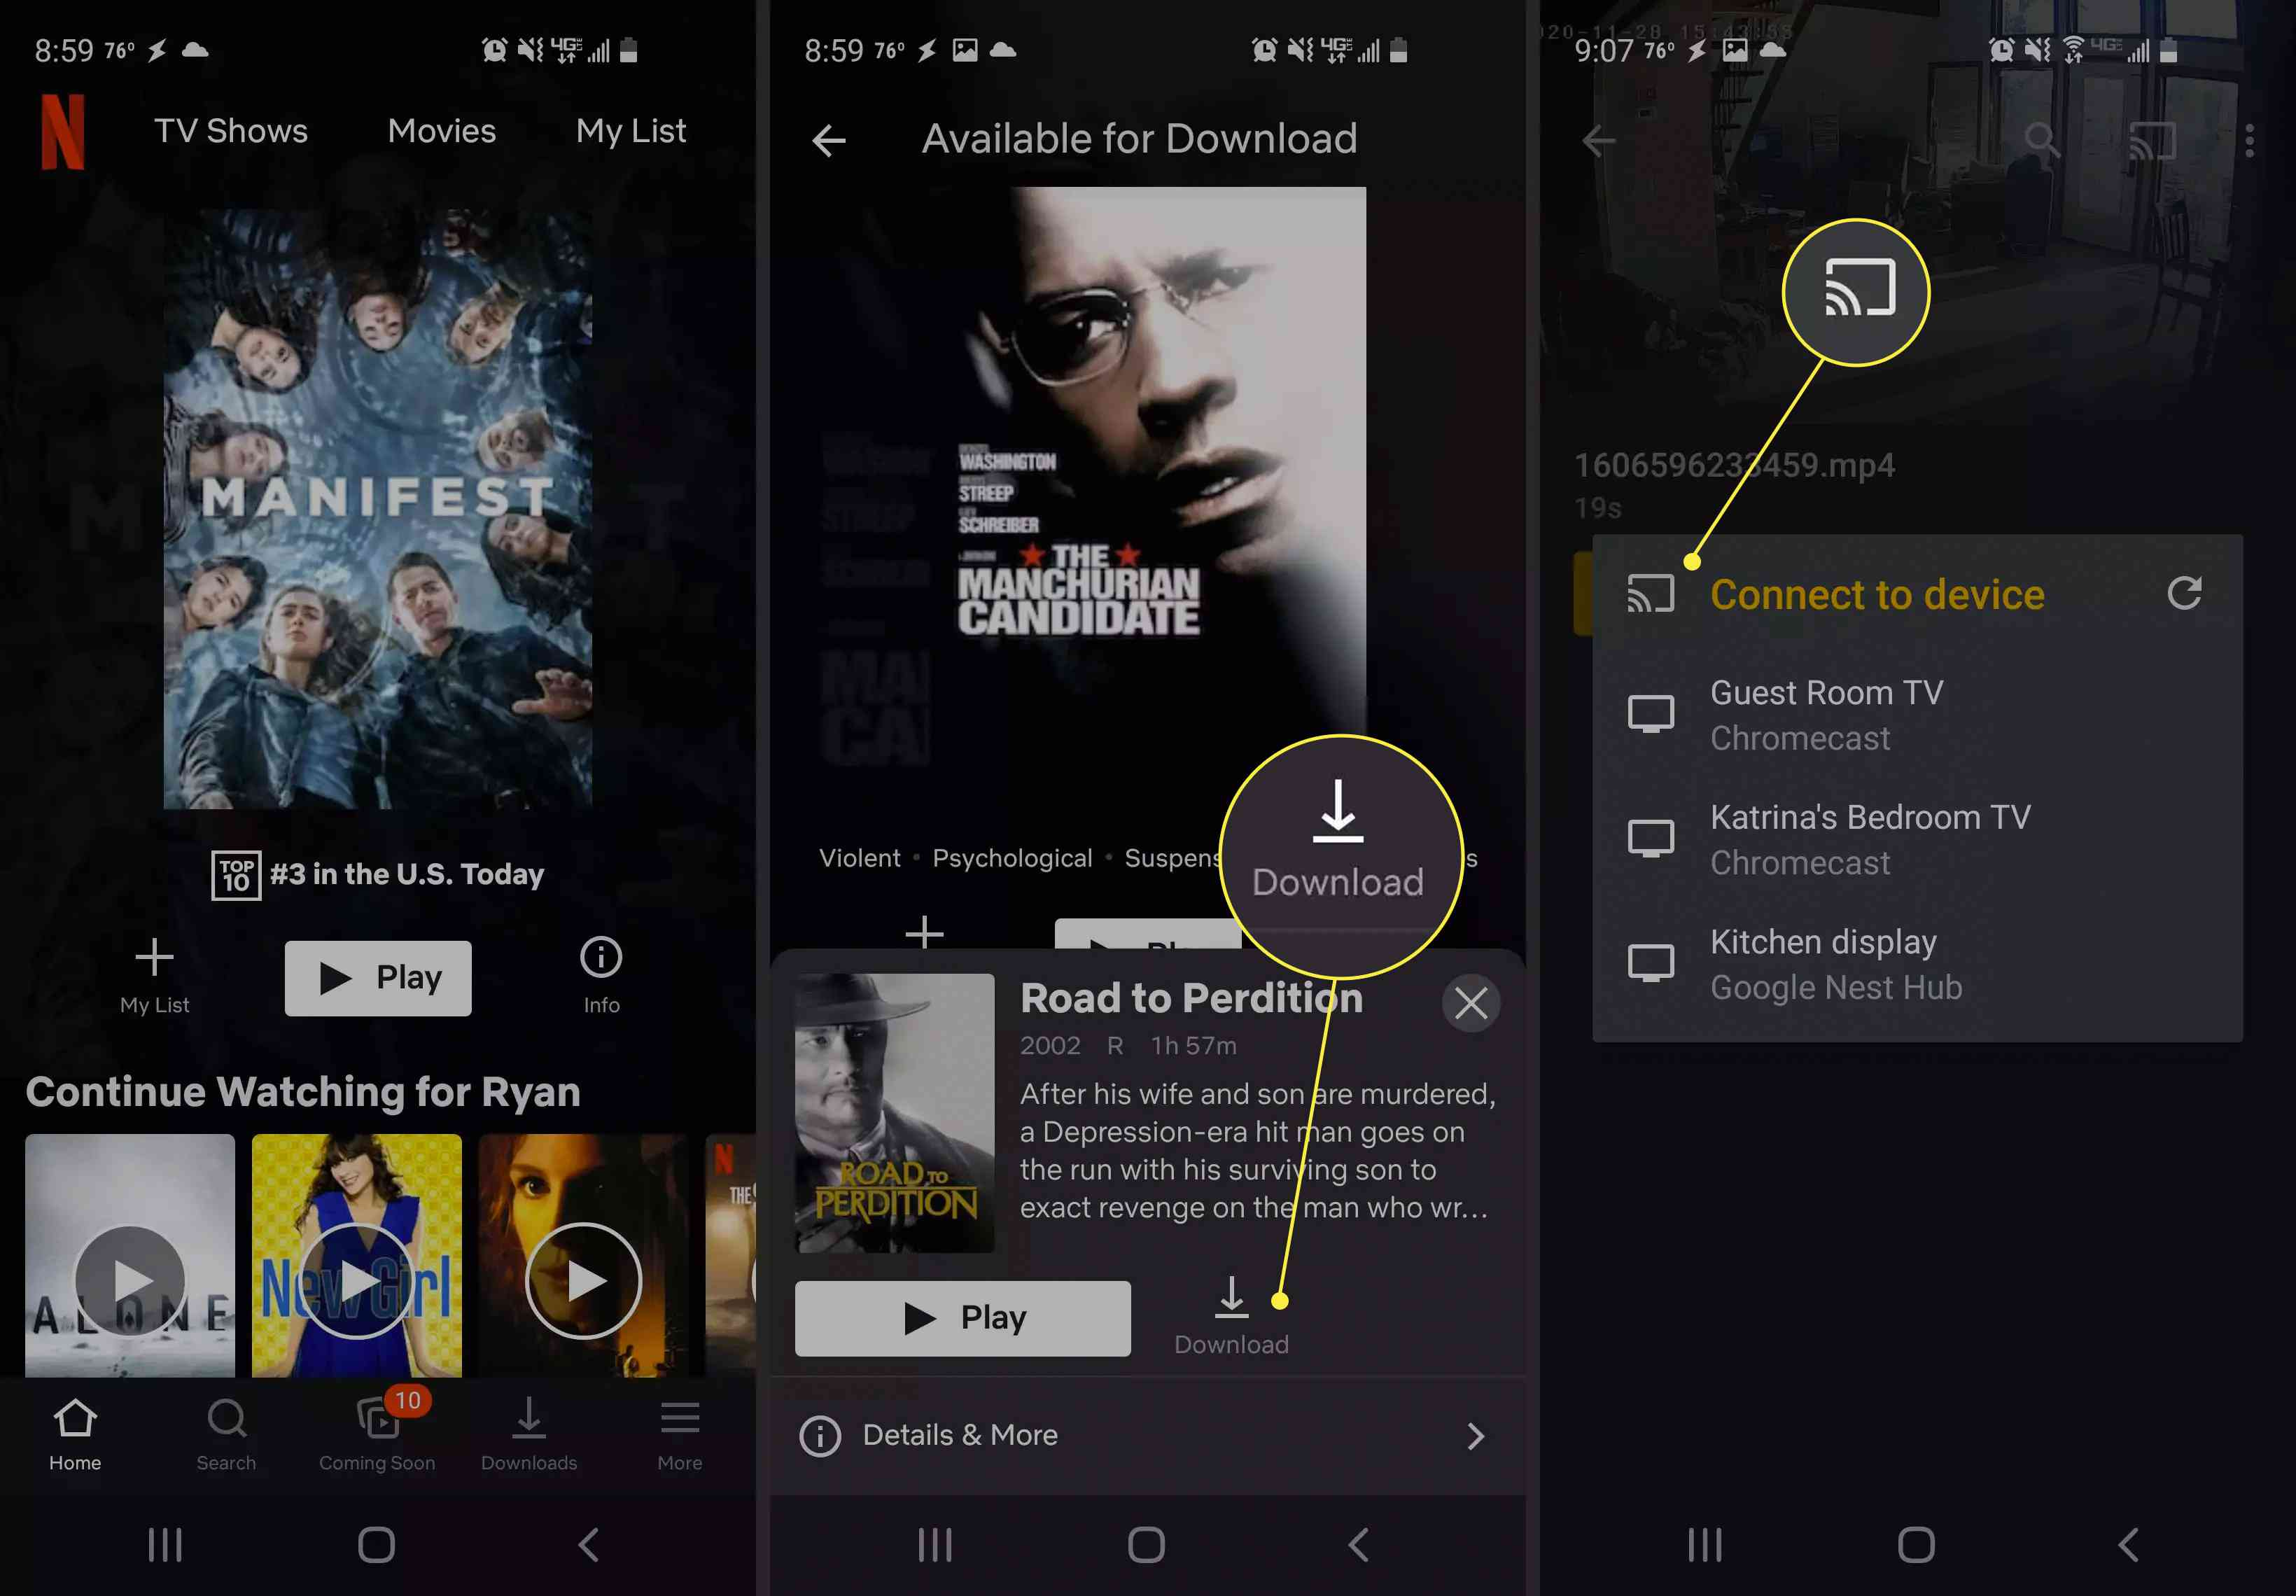 Steps to cast to a Chromecast from a mobile device.